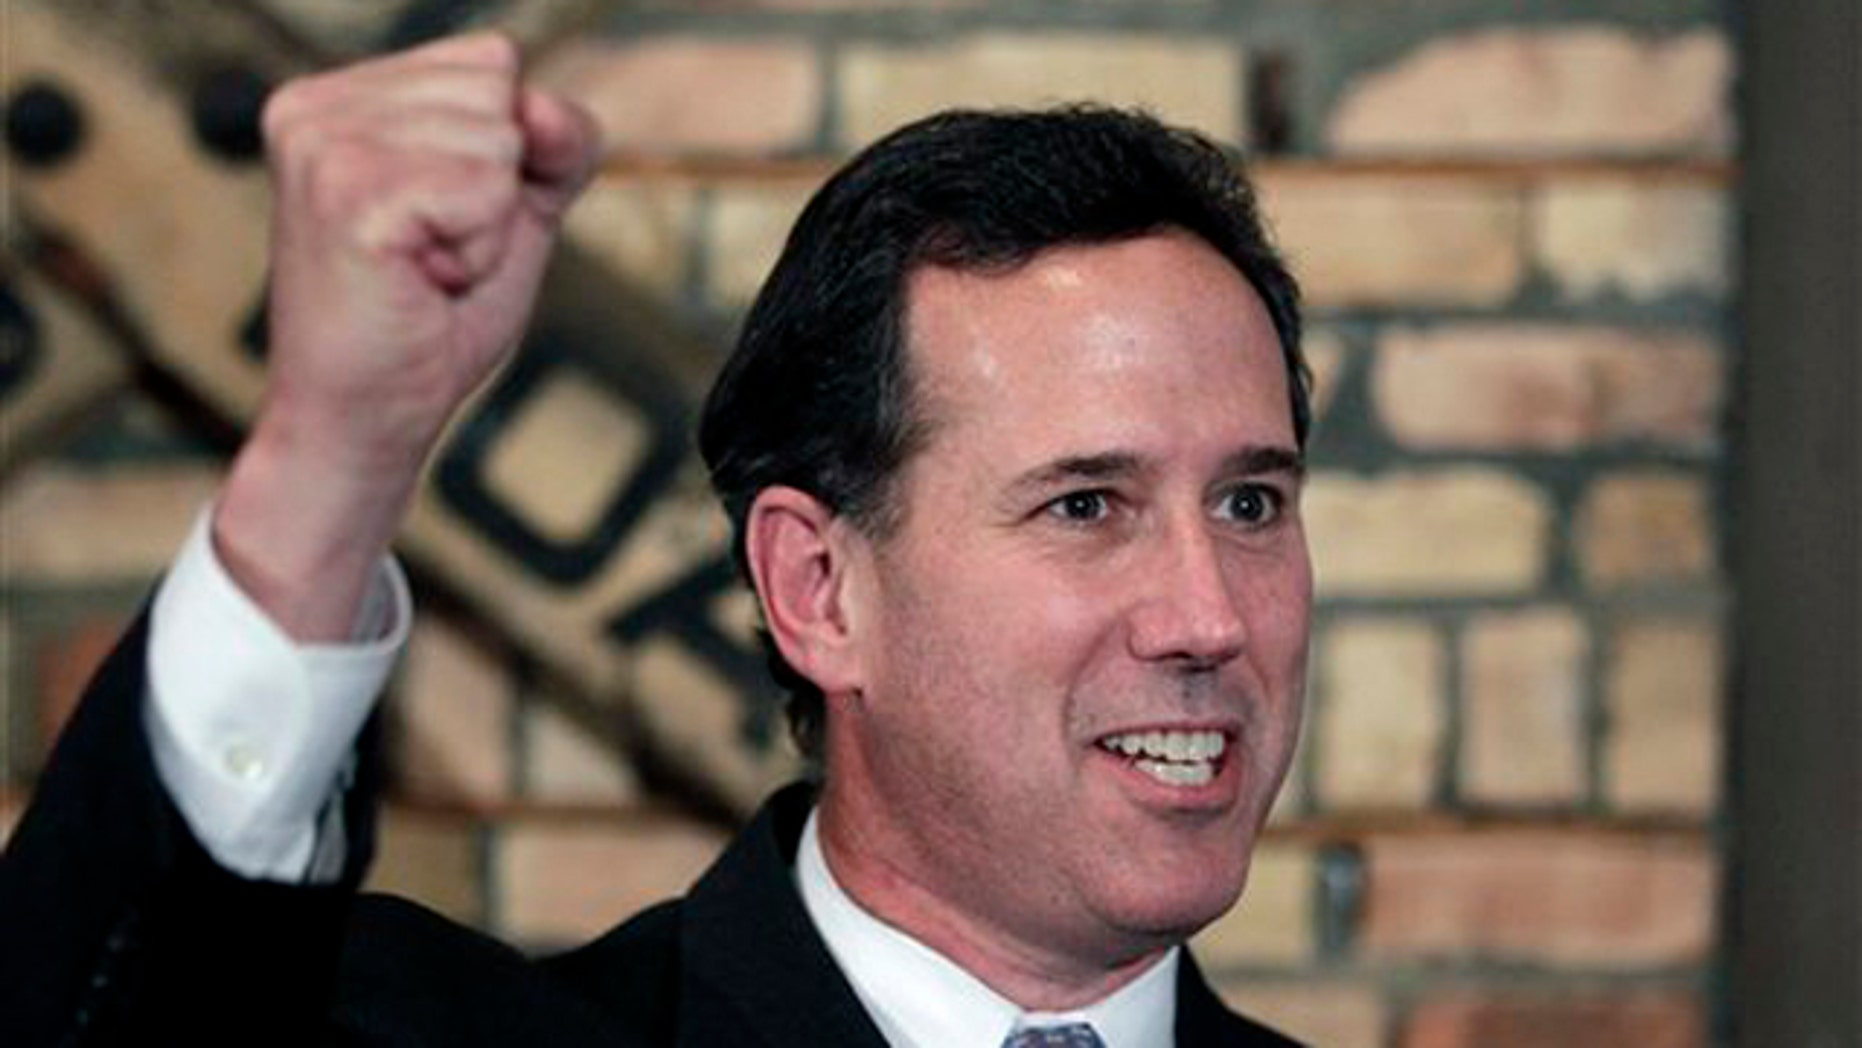 March 24, 2012: Rick Santorum pumps his fist while talking to reporters during a news conference in Green Bay, Wis.